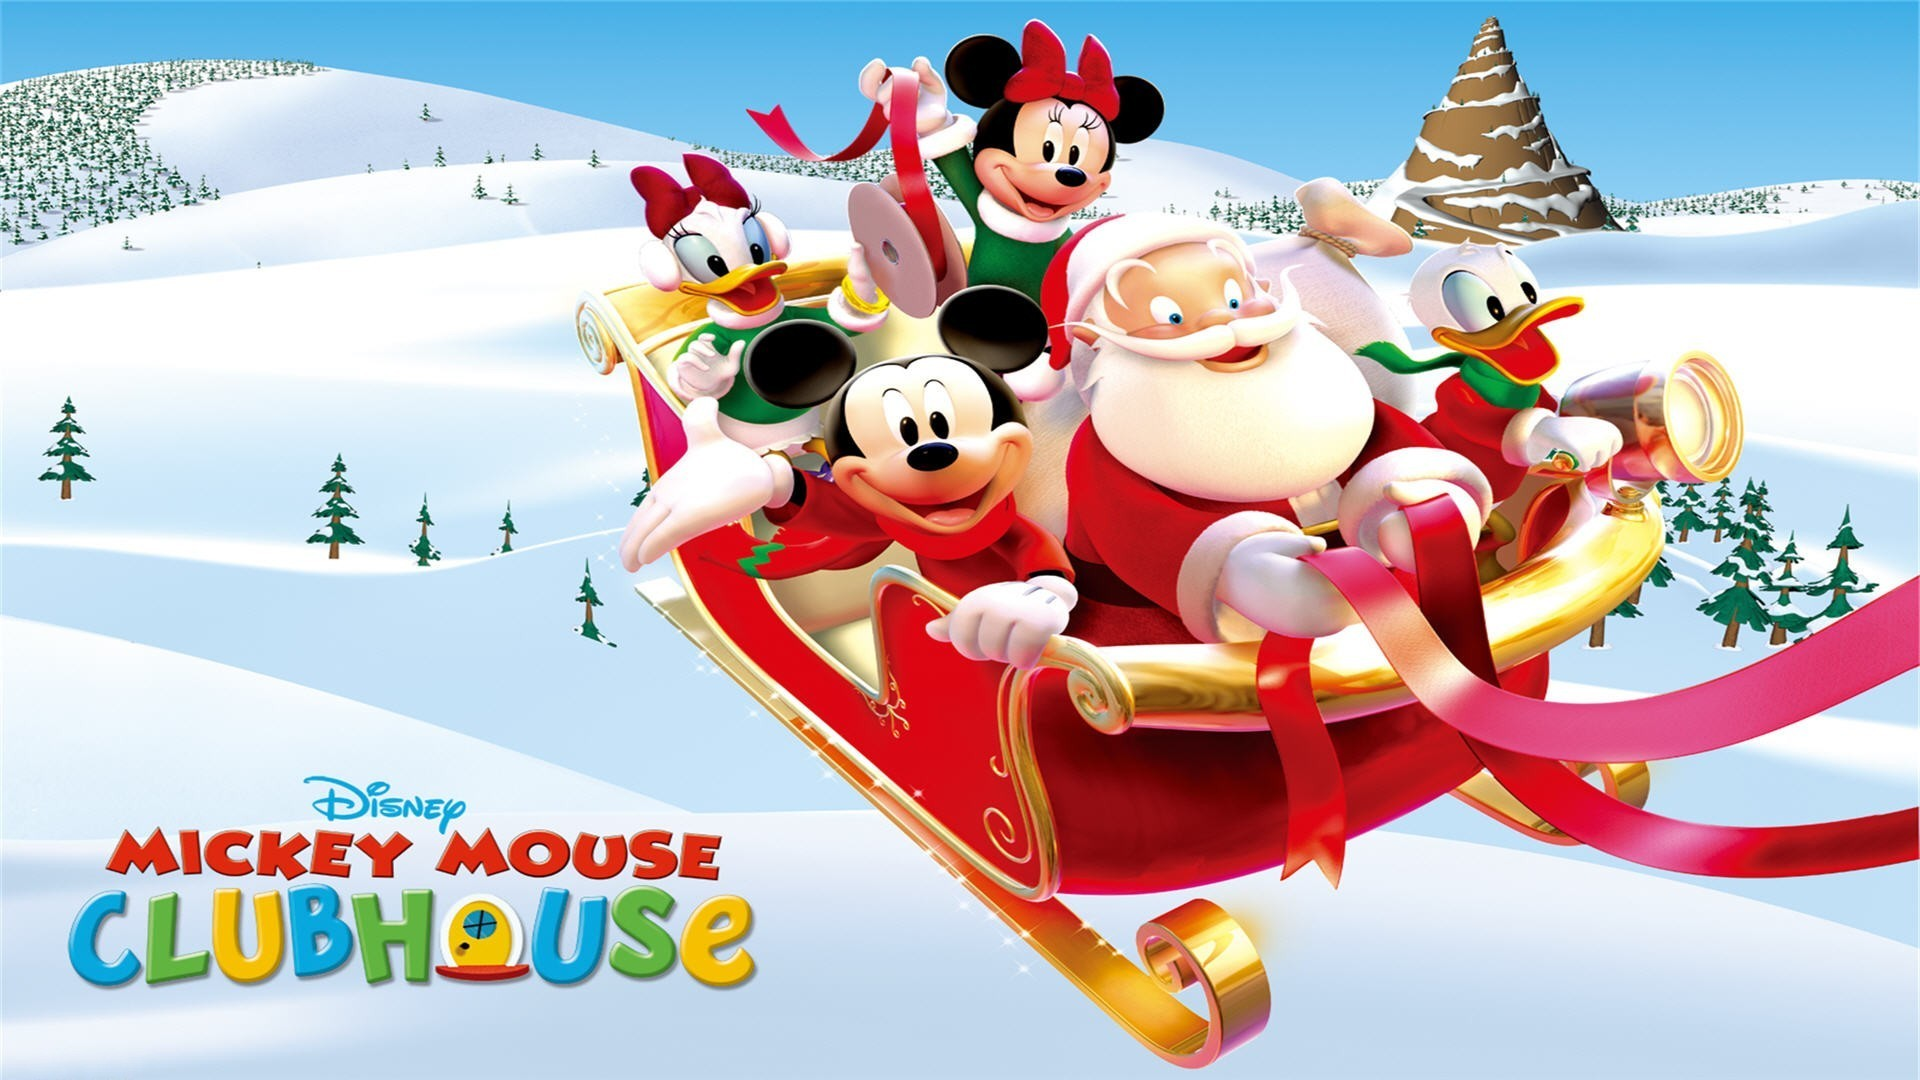 Santa Claus Cartoon Hd Images Free Download 1